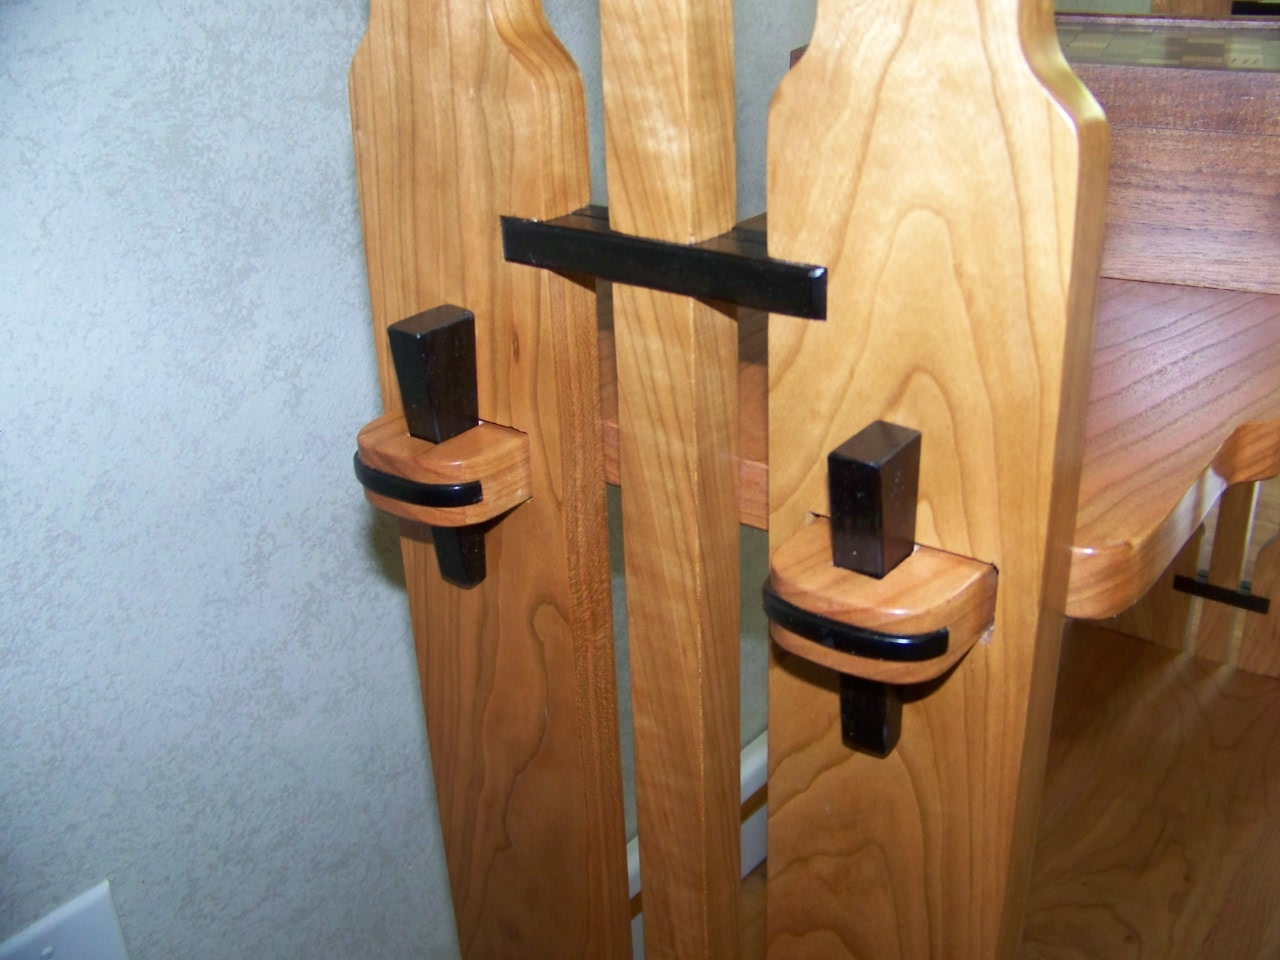 1000 Images About Greene And Greene On Pinterest Joinery Mortise And Tenon And Round Picnic